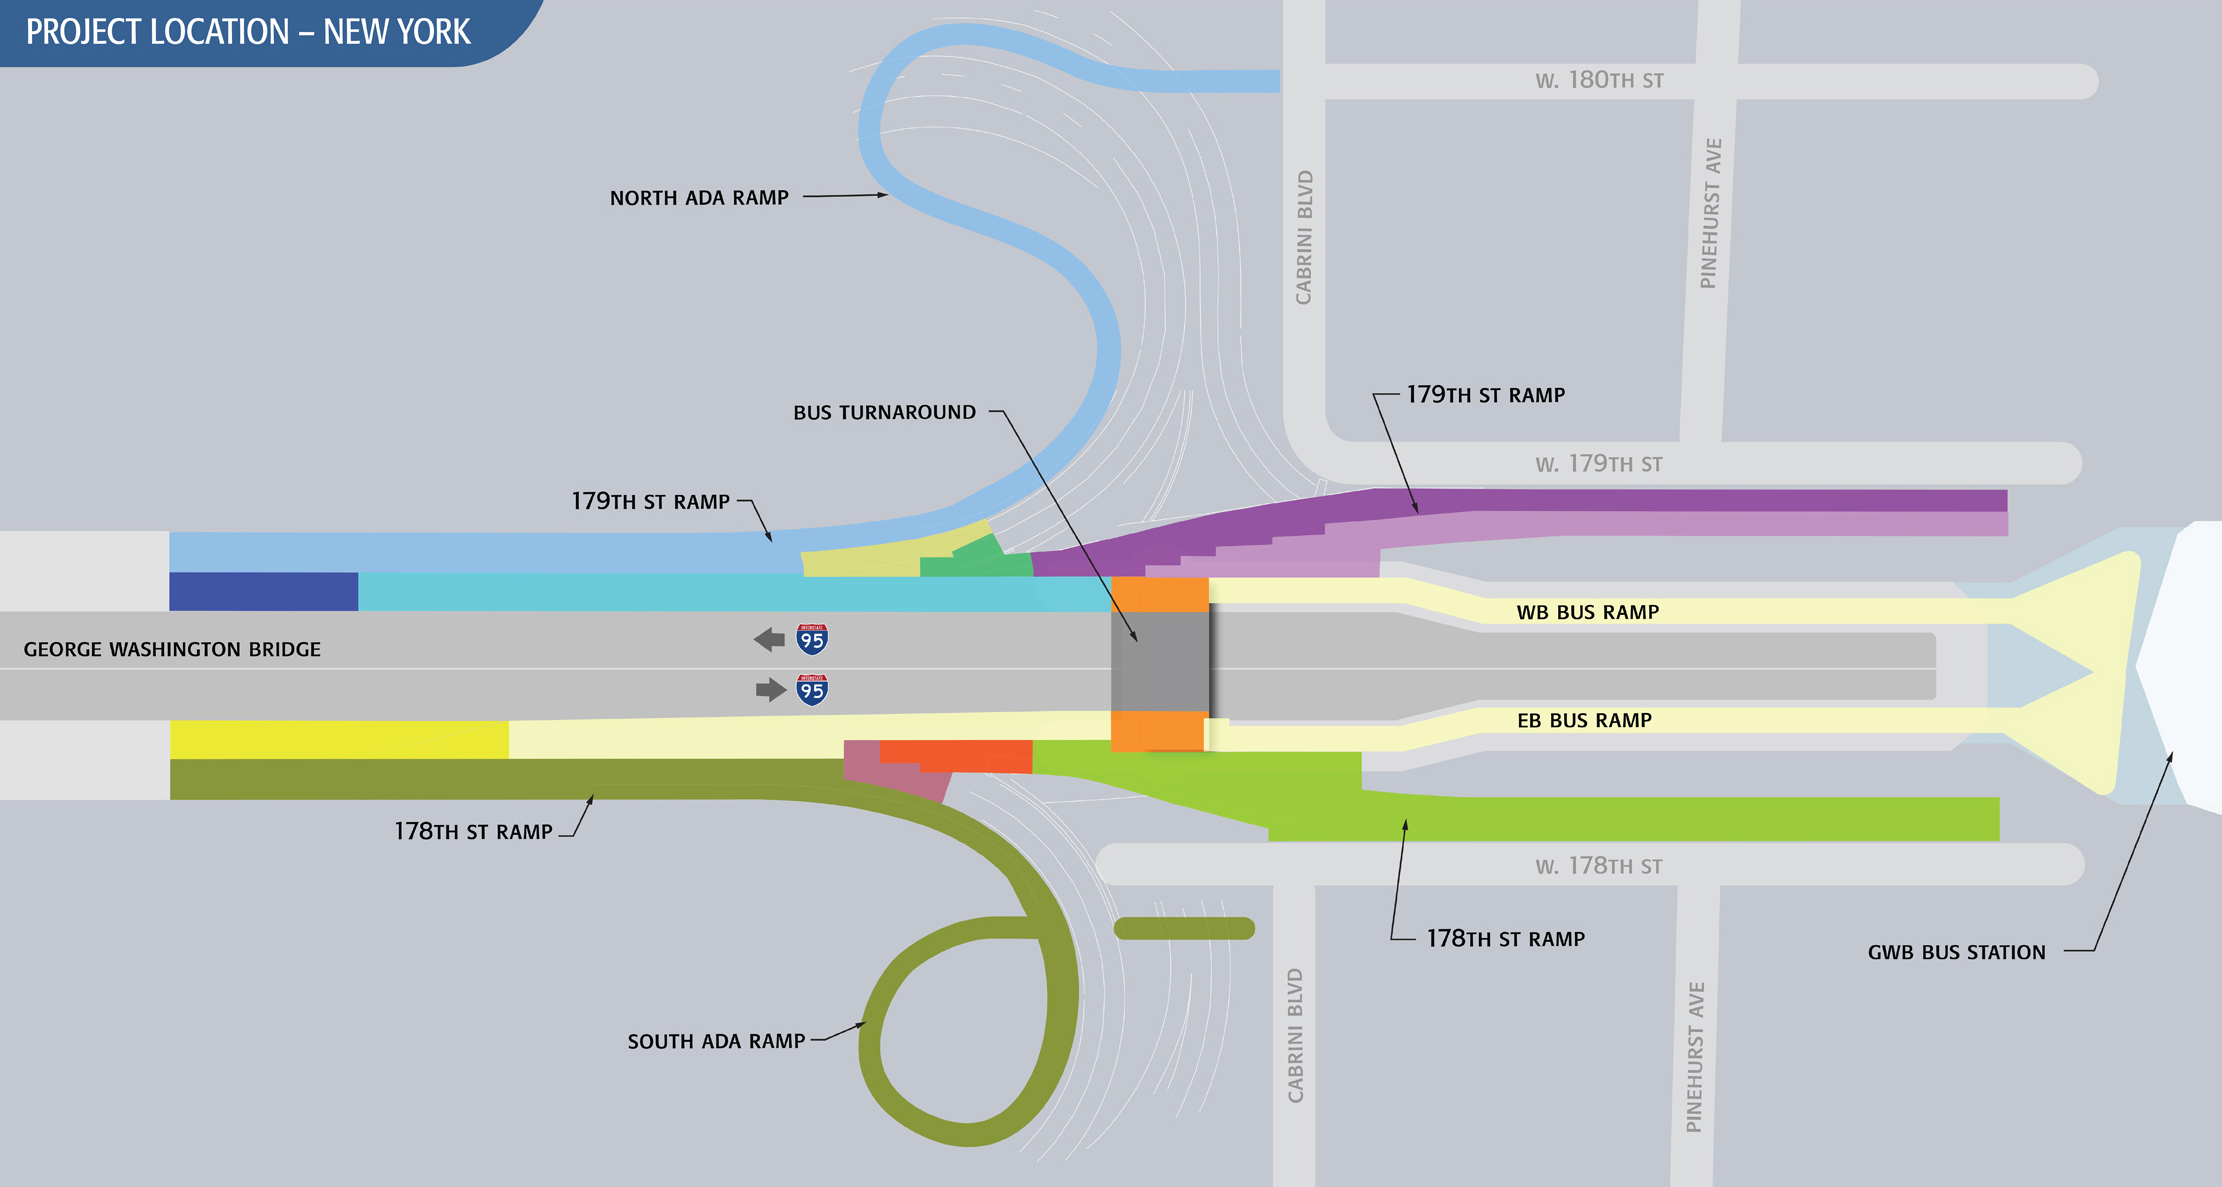 Map showing ramps to be rehabilitated on the New York side of the George Washington Bridge. Credit: Port Authority.